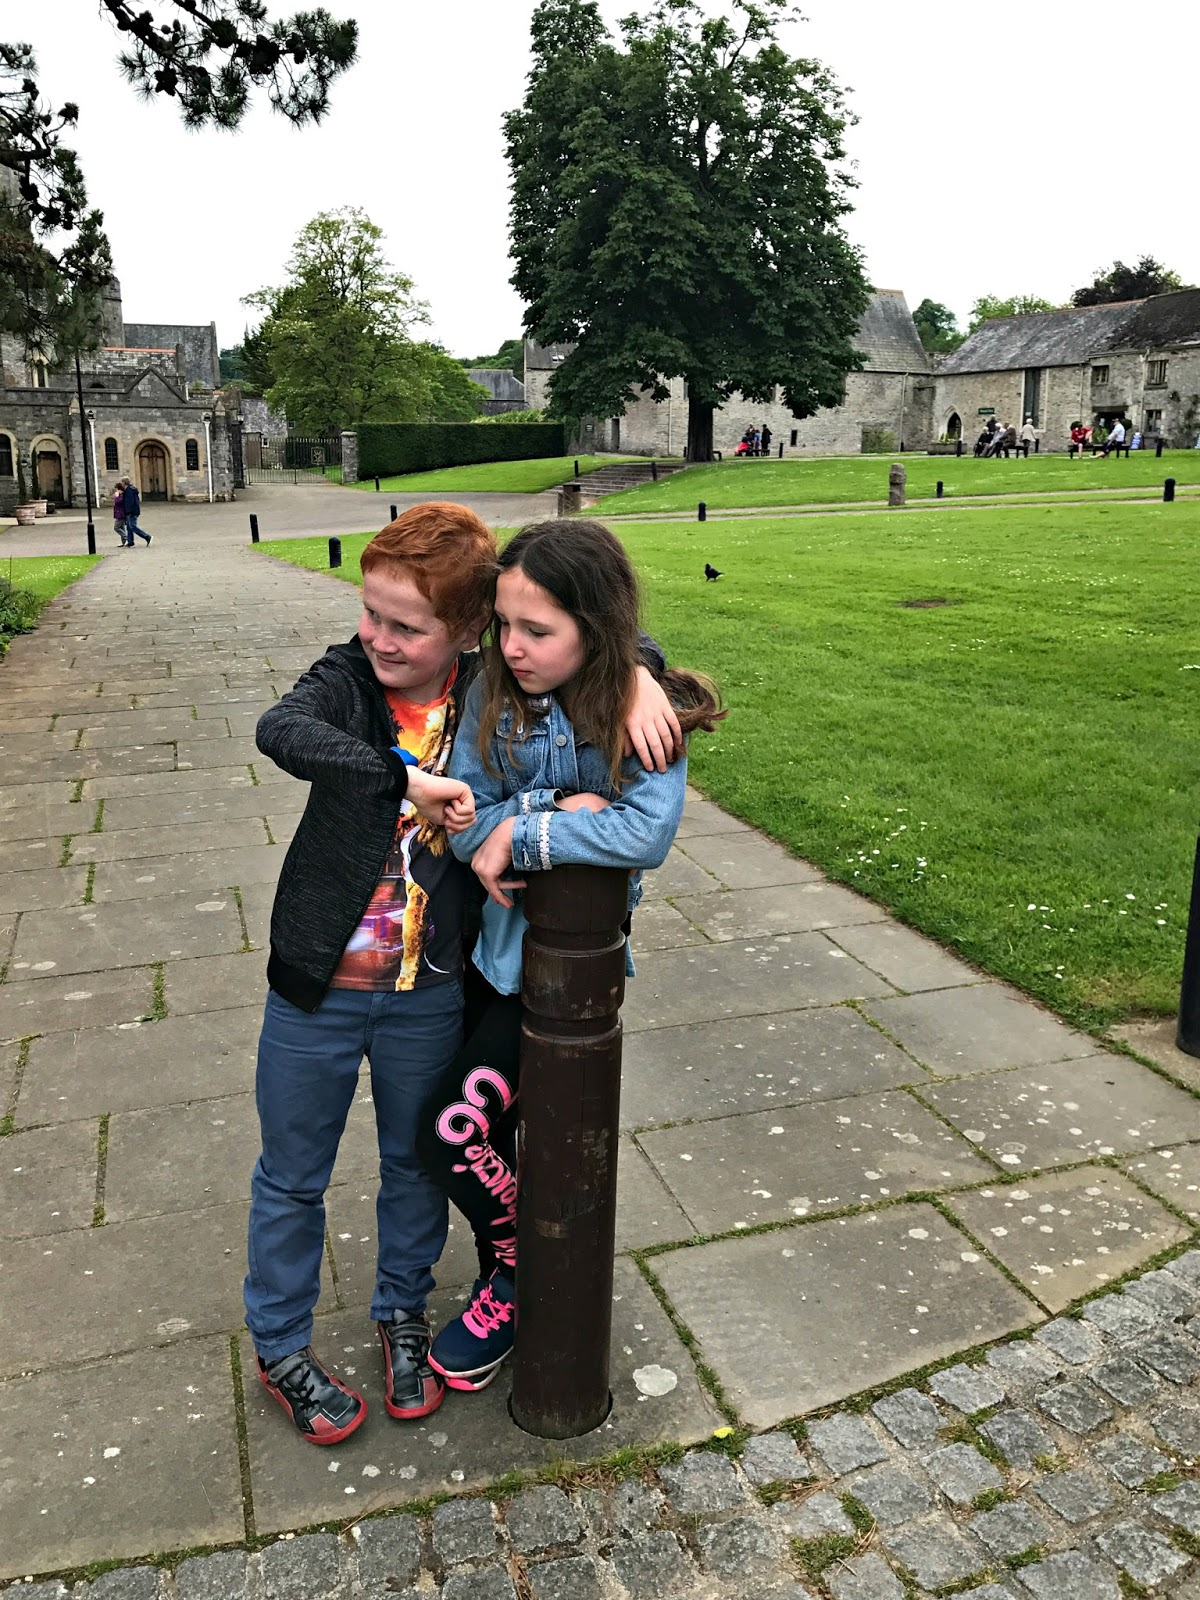 Caitlin & Ieuan consulting the dokiWatch at Buckfast Abbey, Devon